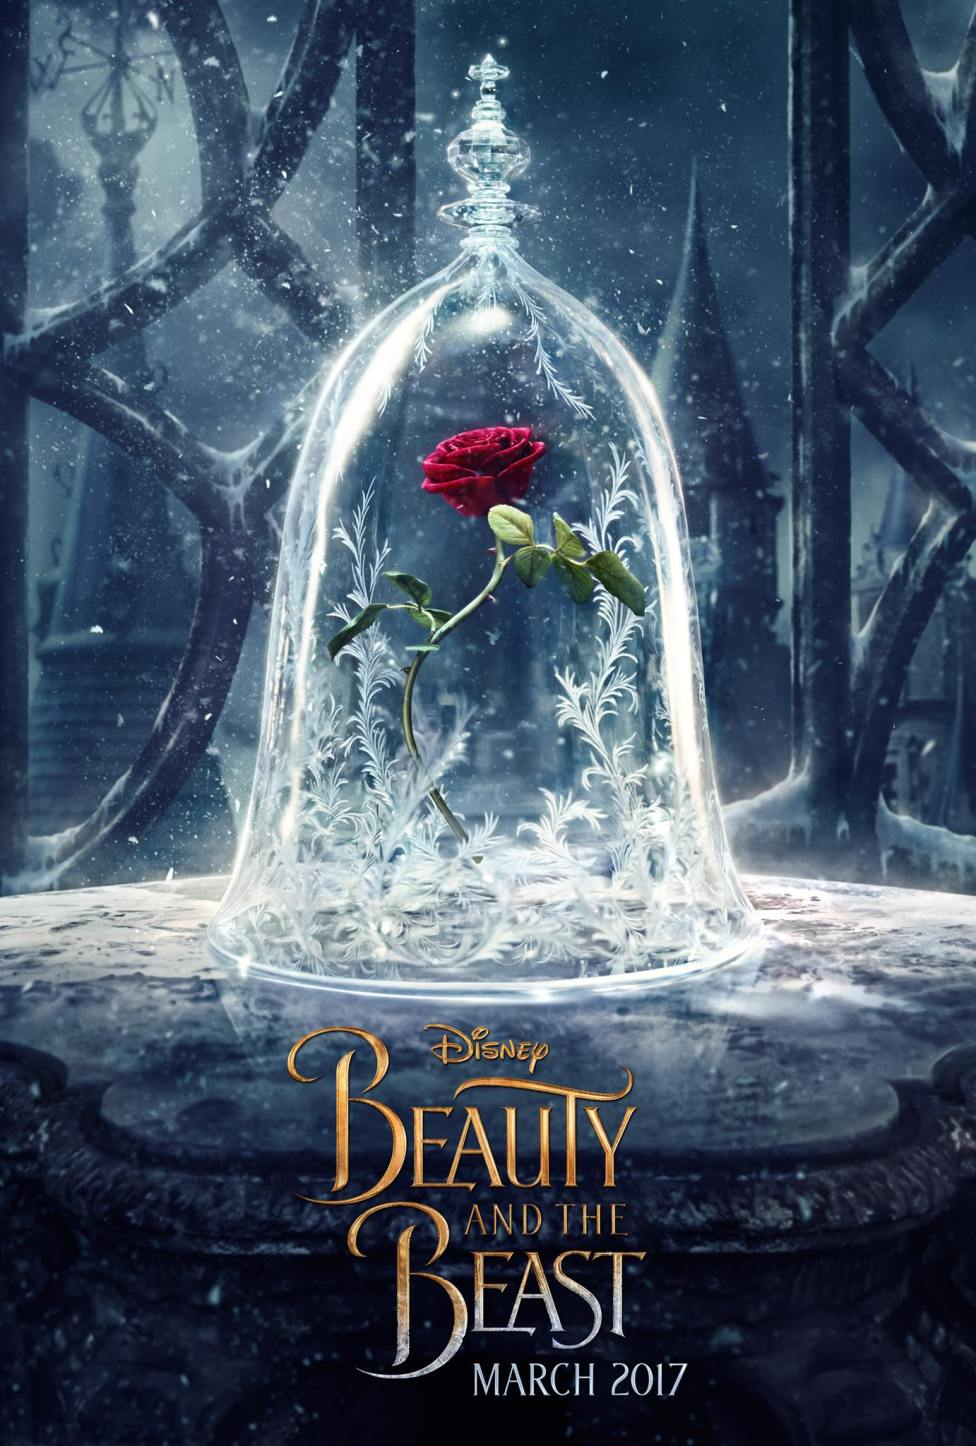 Disneys-Beauty-and-the-Beast-3D-poster-Emma-Watson-